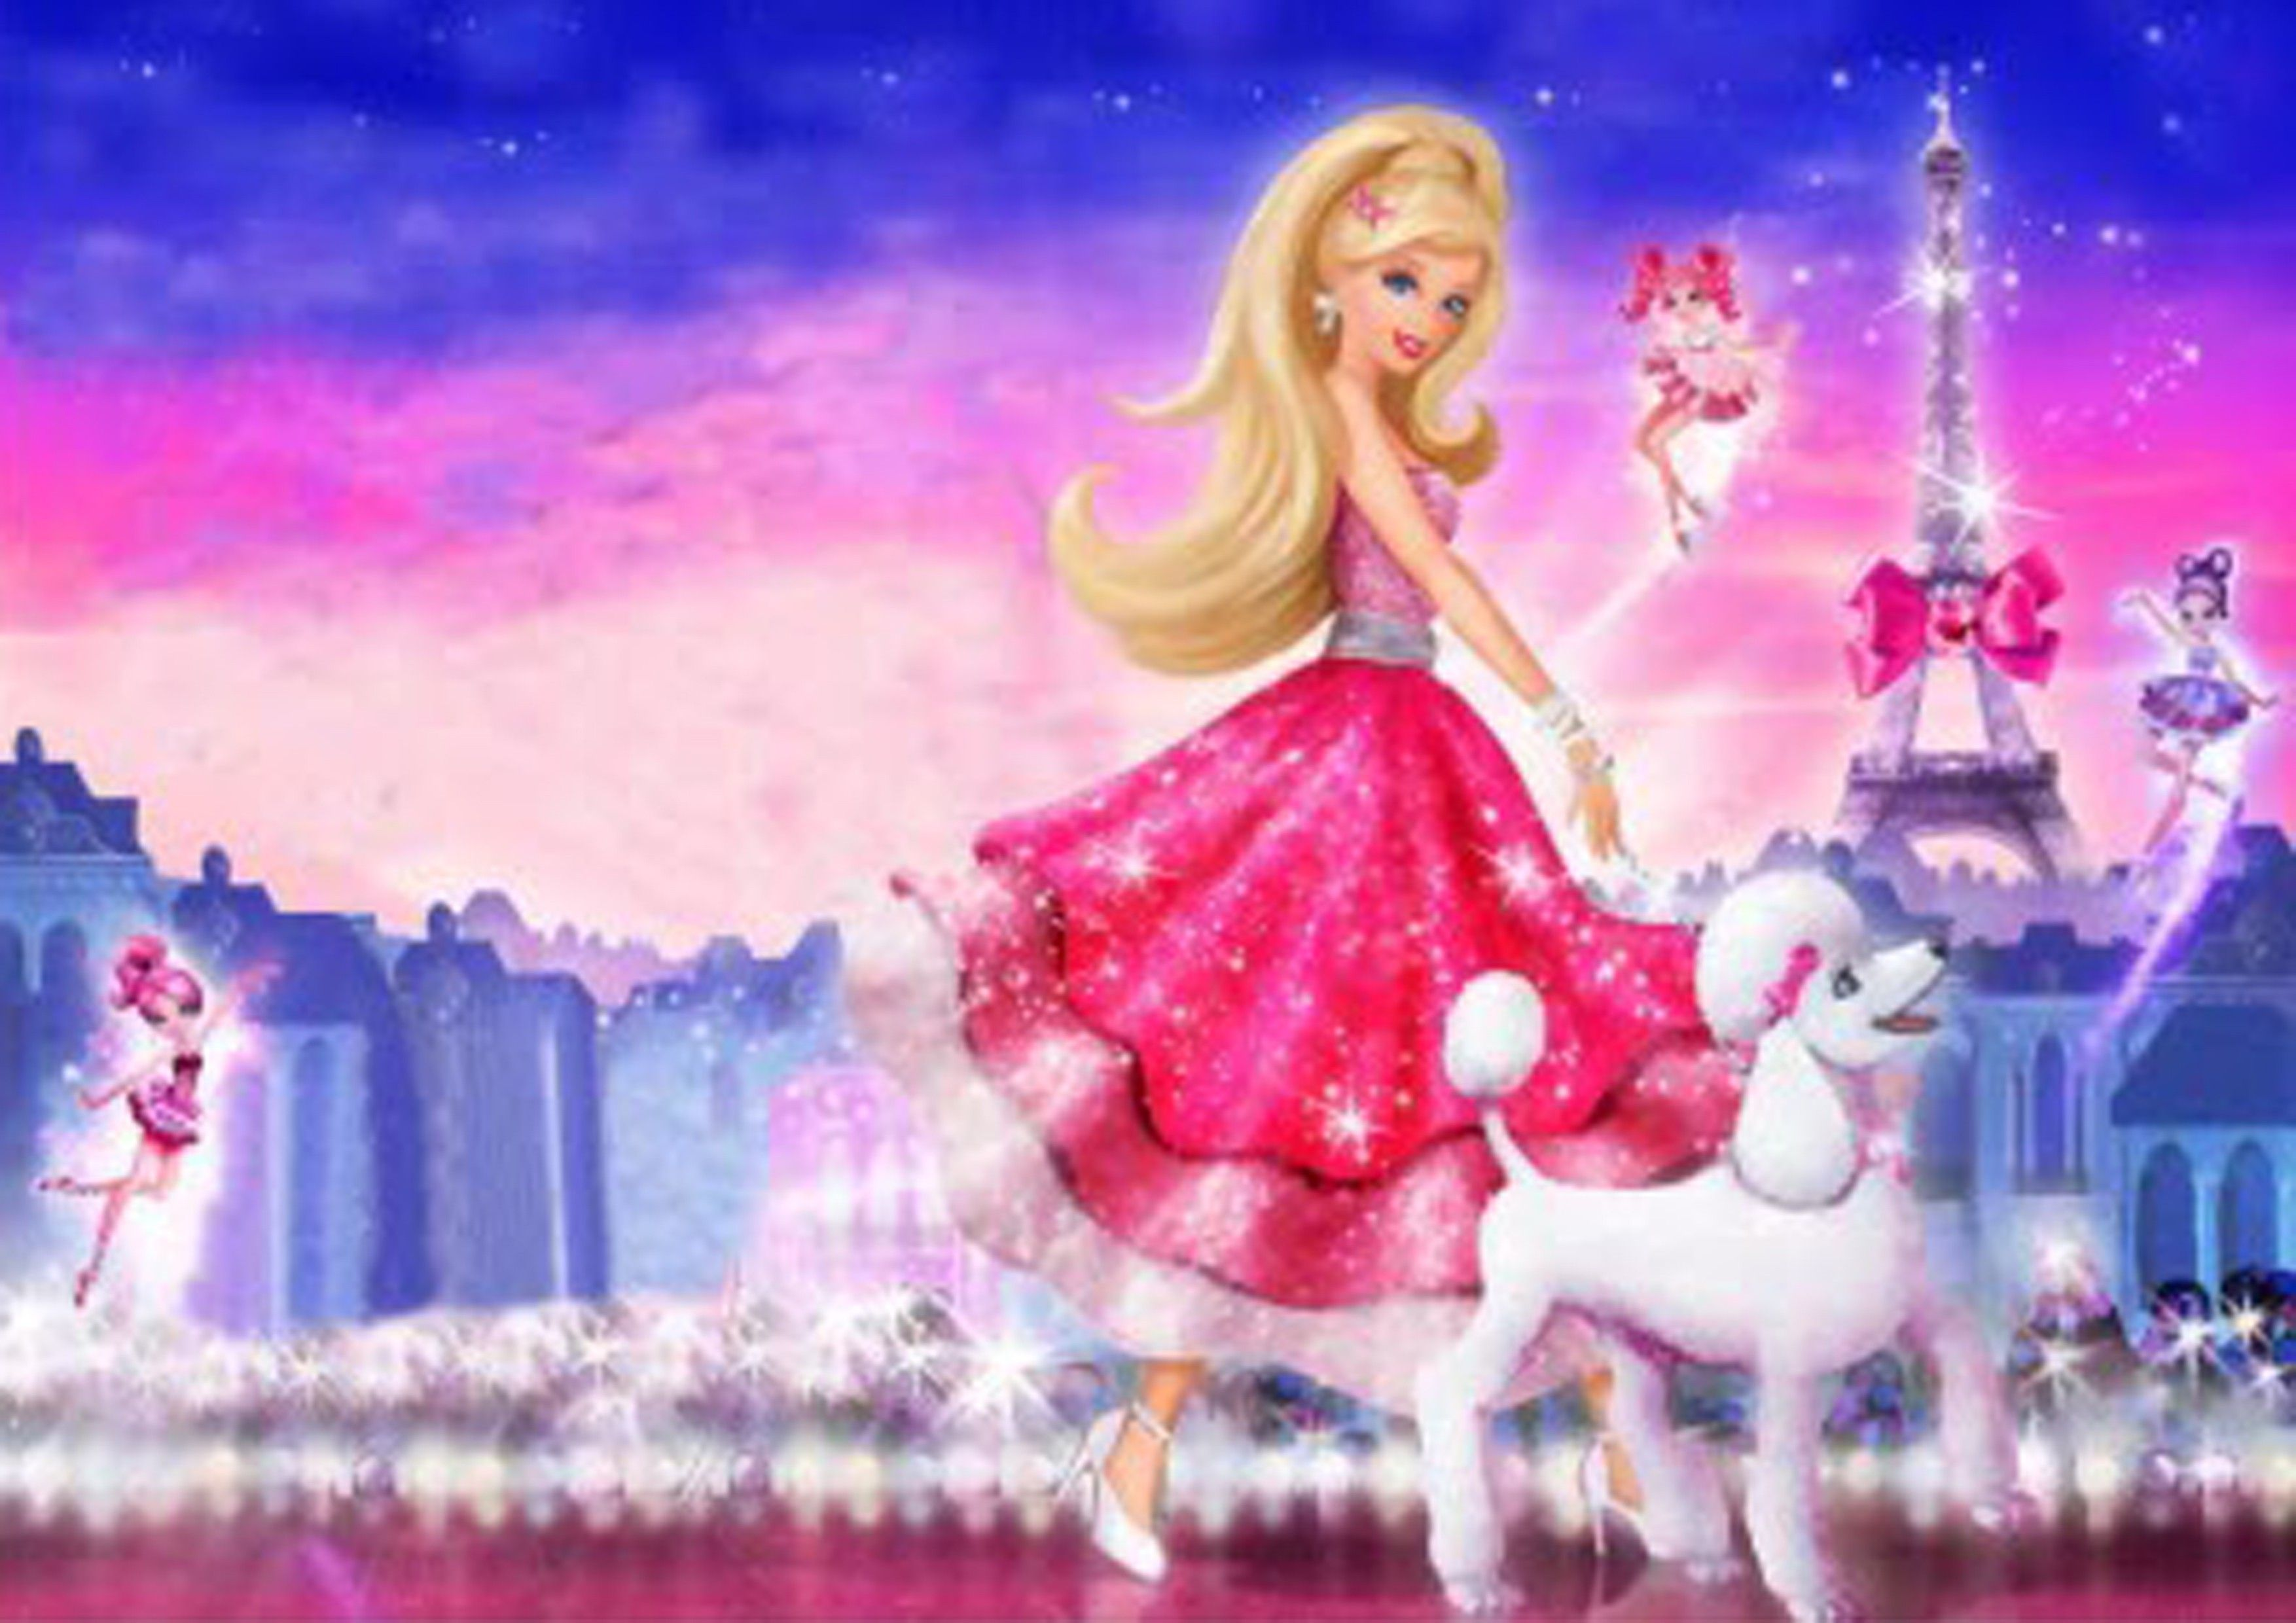 Gallery for barbie wallpaper background color pinterest gallery for barbie wallpaper background voltagebd Images